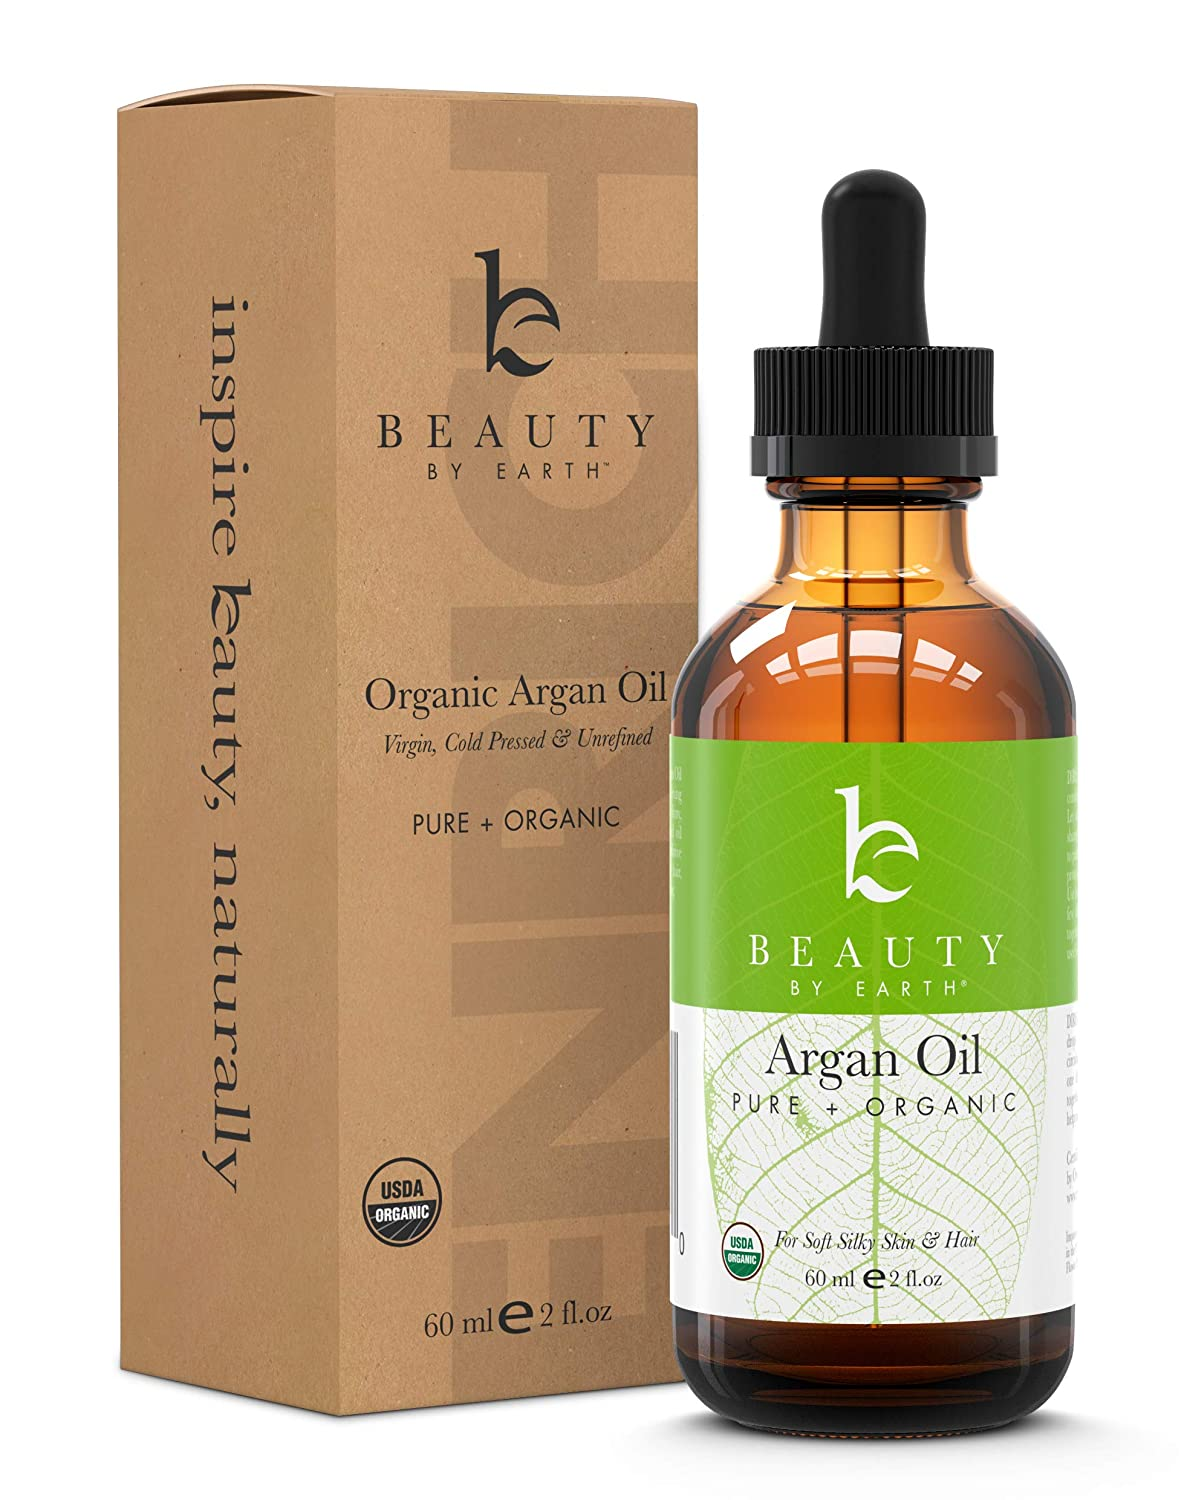 Argan Oil - USDA Organic Moroccan Oils for Face, Hair and Skin, Best Anti-Aging Ingredient for DIY Skincare and Hair Care Products, Safe for All Skin Types, 2 oz Beauty By Earth